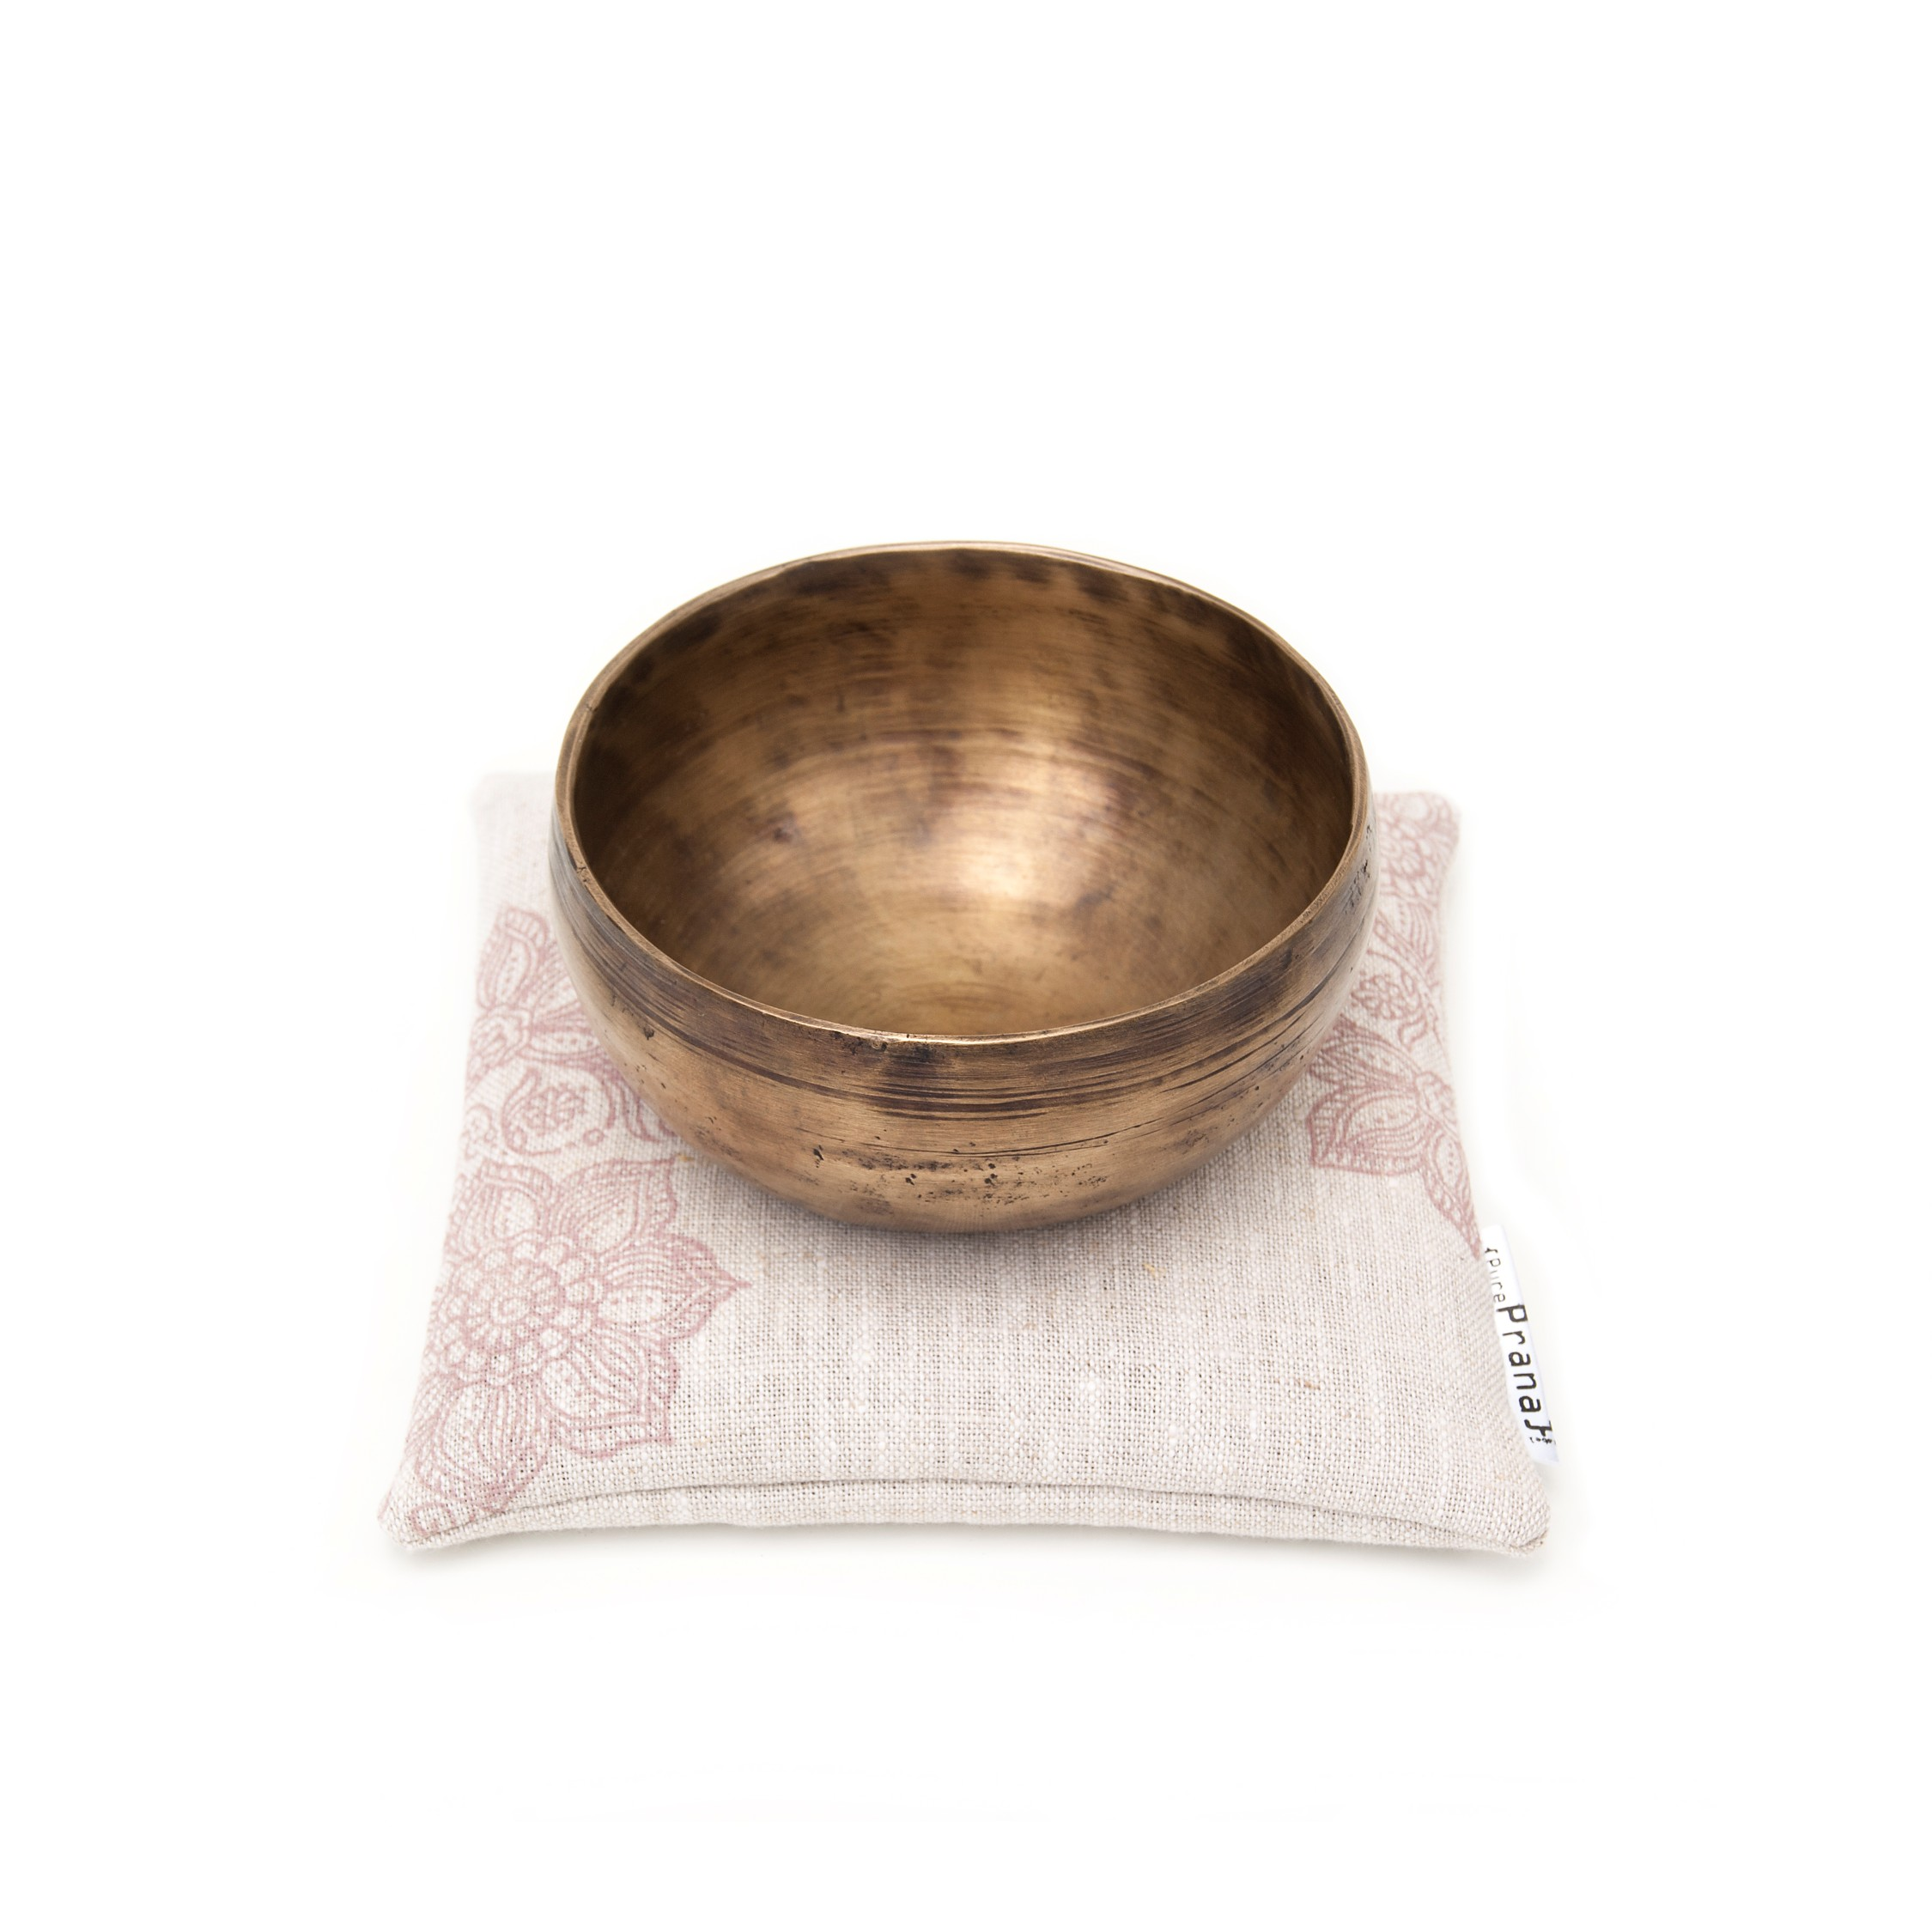 Stunning and unique natural singing bowl cushion